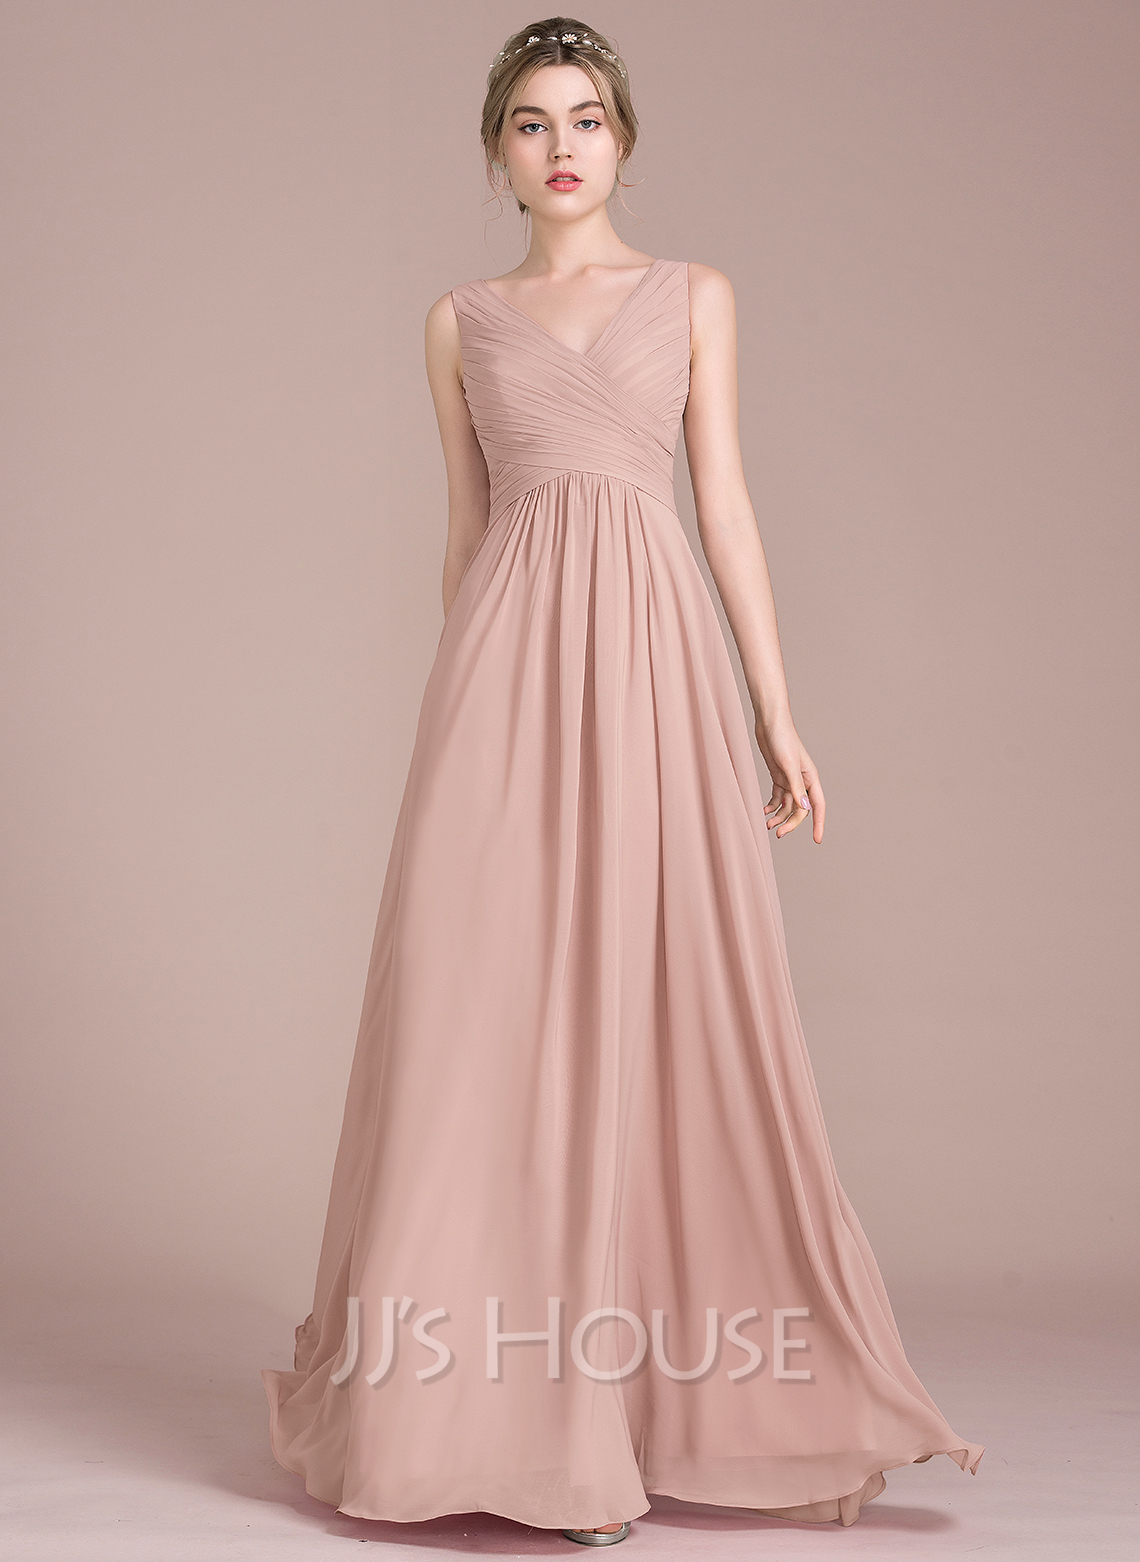 a32123940c5 A-Line Princess V-neck Floor-Length Chiffon Bridesmaid Dress With Ruffle.  Loading zoom